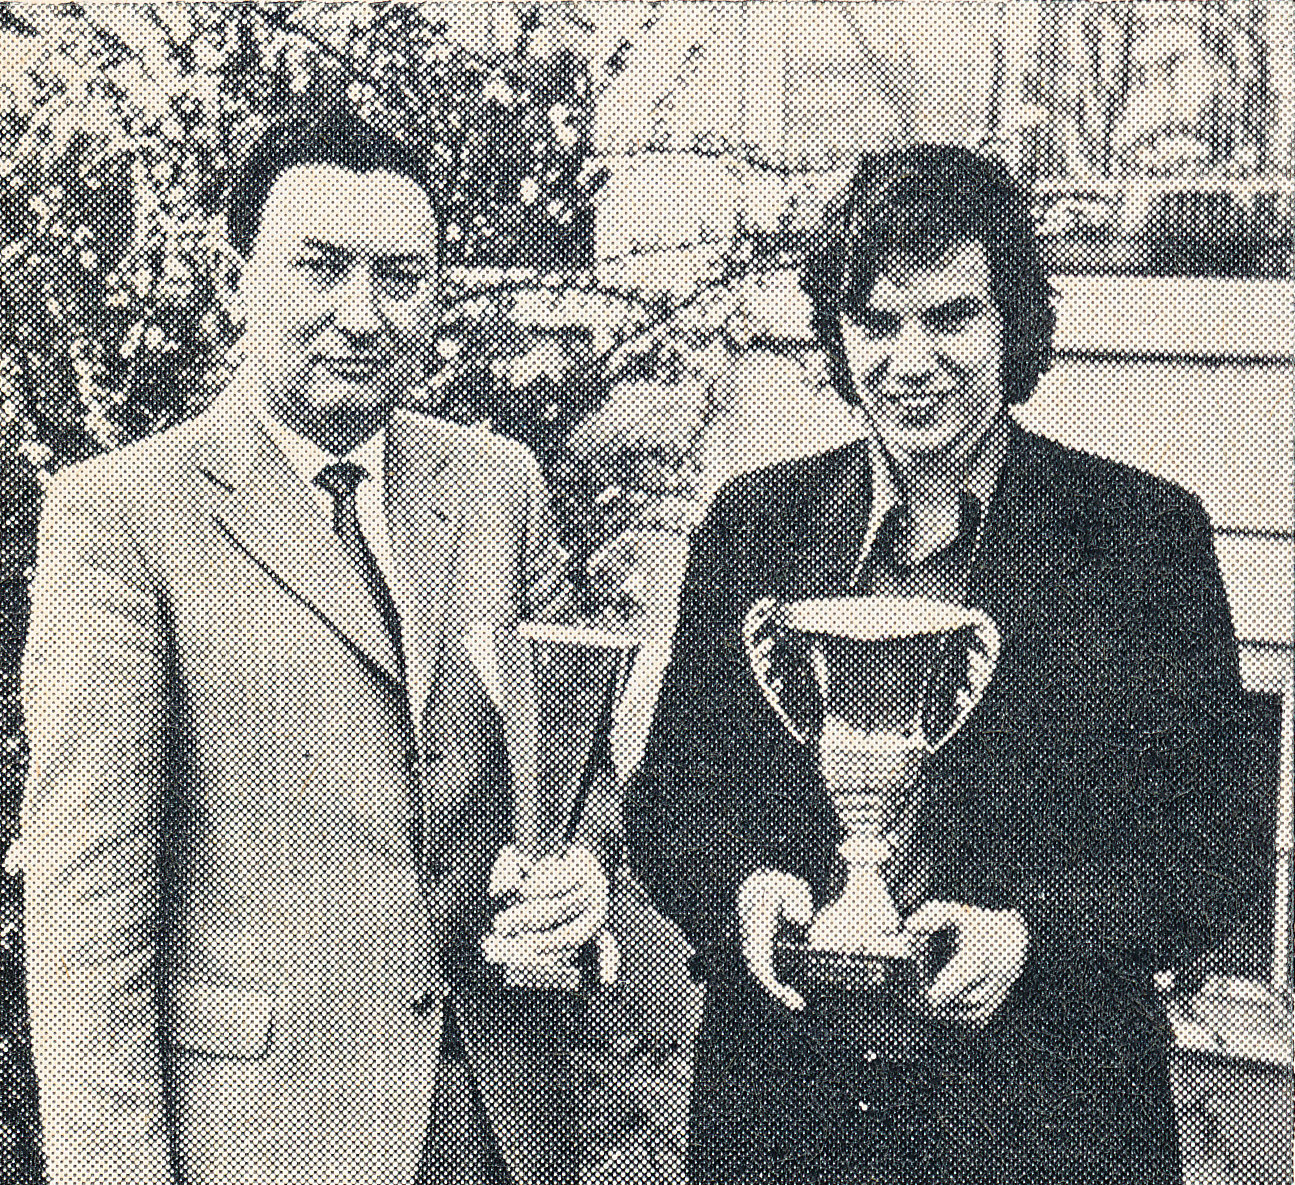 Joint winners of the 1973 Strasbourg Open : N. Karaklaic and Simon Webb. Photography by Mike Rose. CHESS, Volume 88, June, page 283